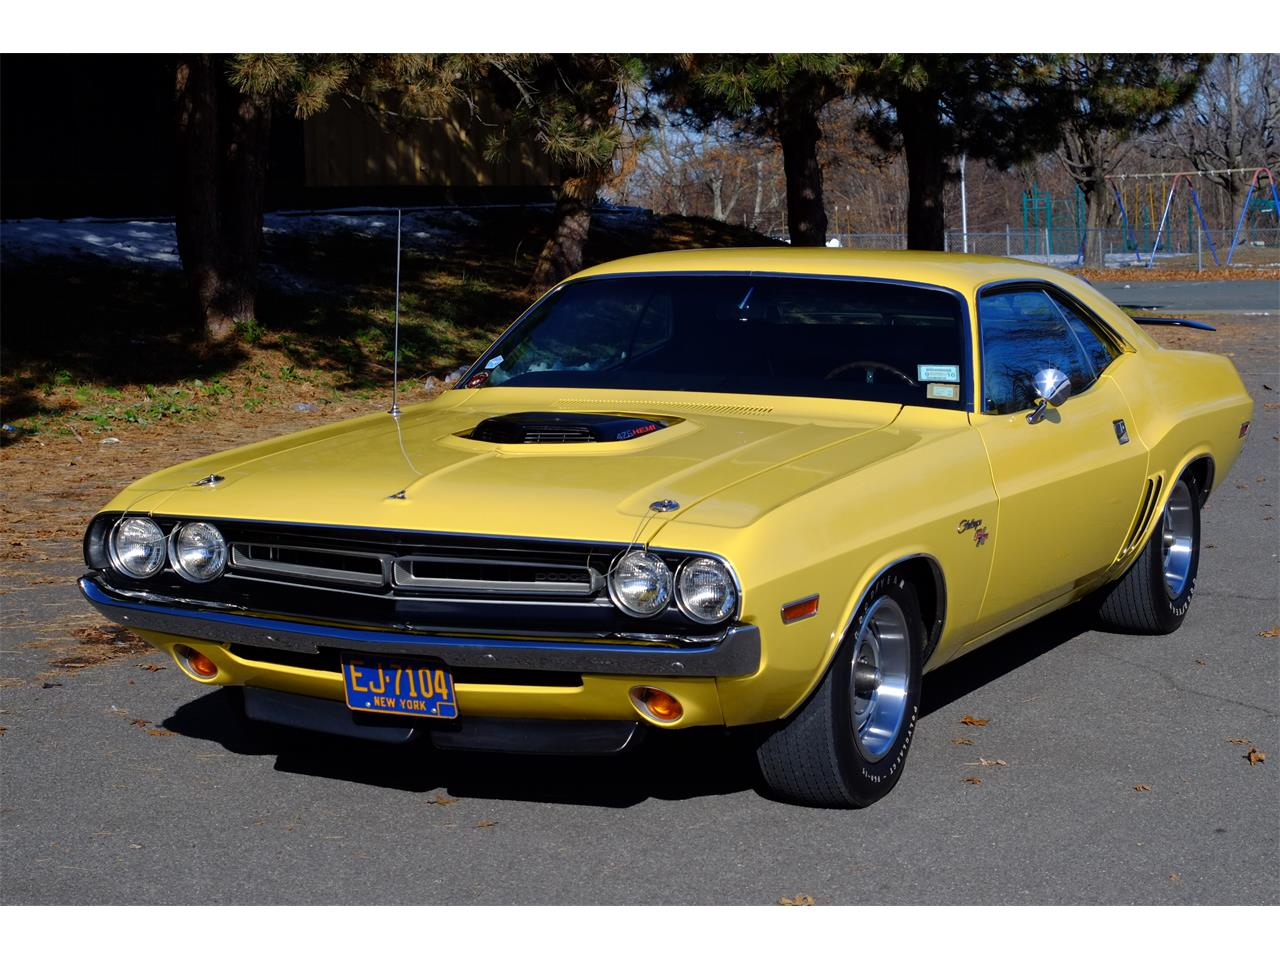 Large Picture of '71 Challenger R/T 426 Hemi located in New York - $325,000.00 - JY6E